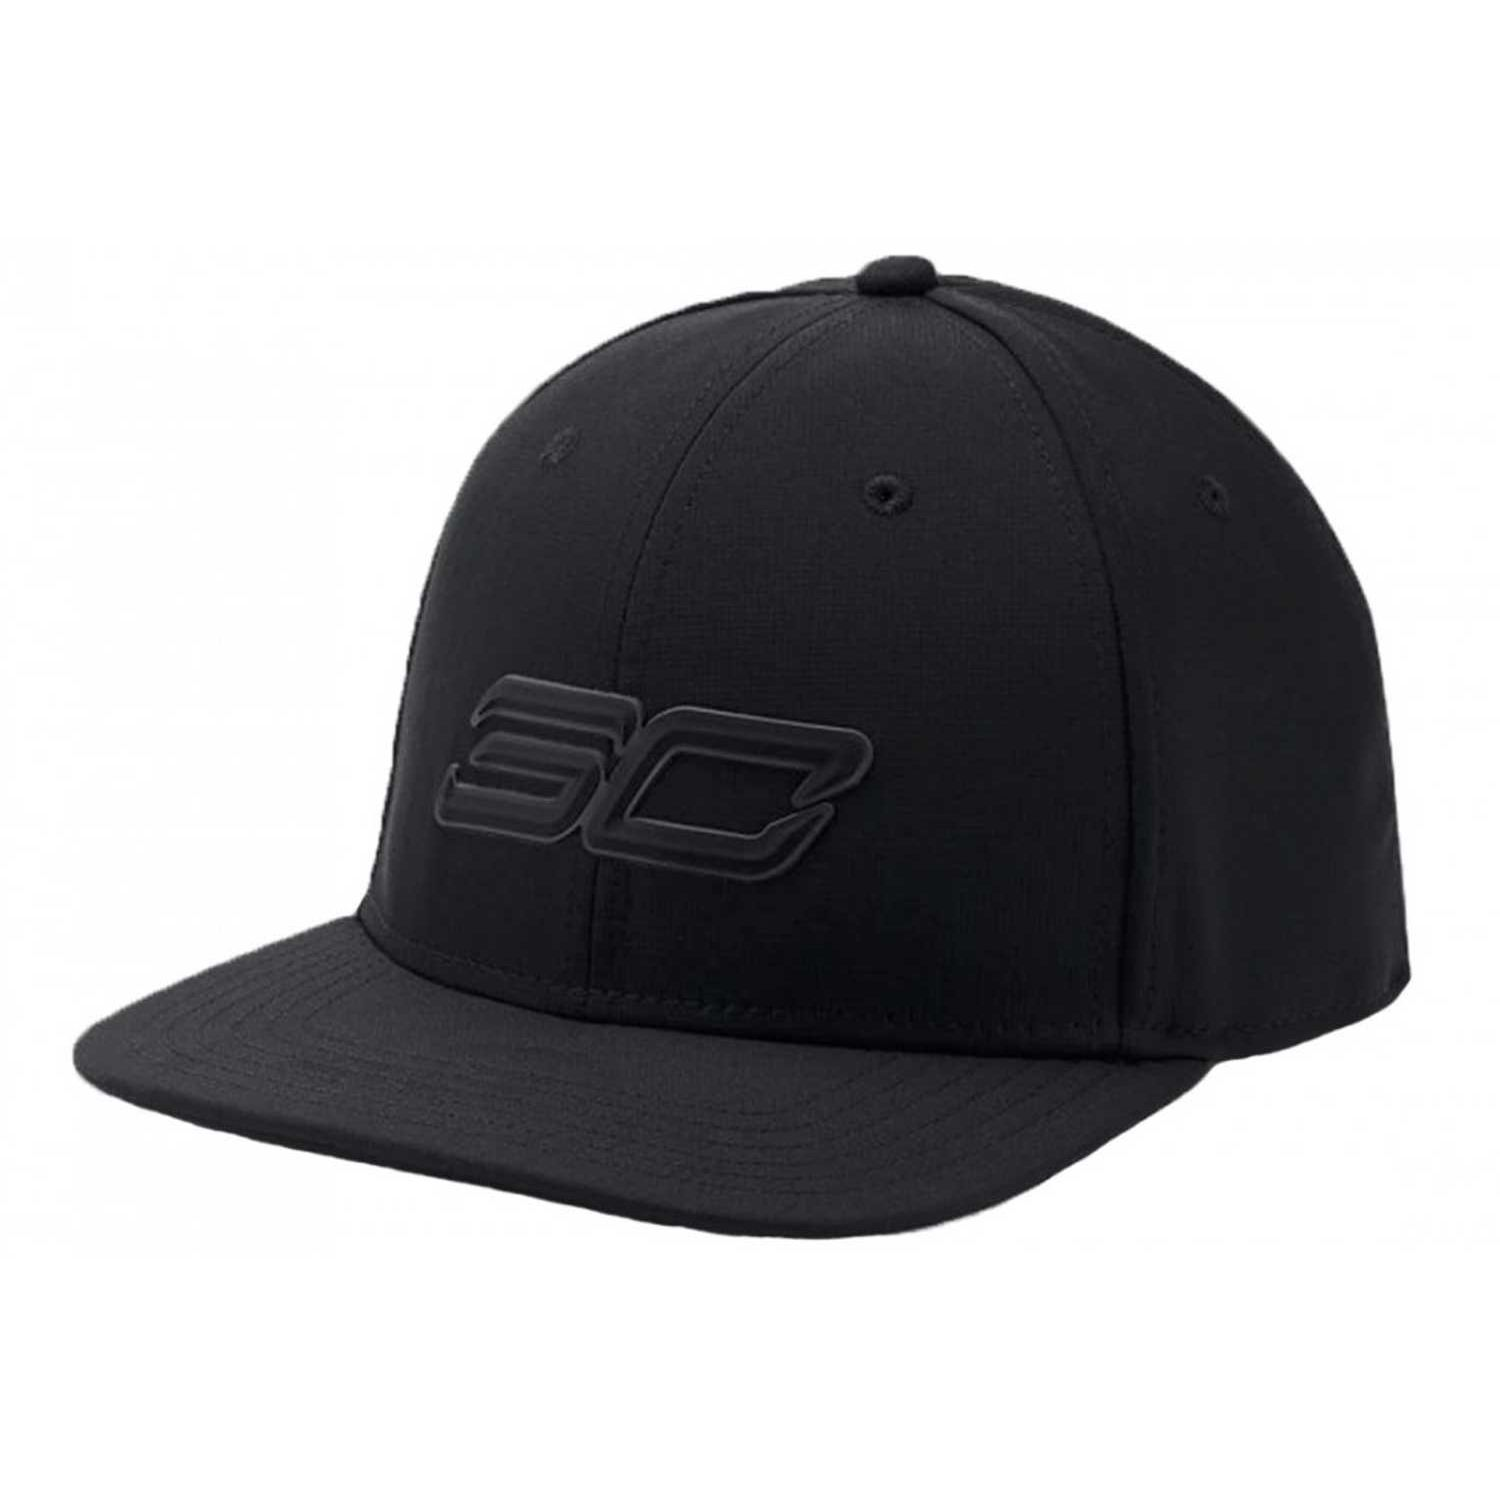 Gorros de Hombre Under Armour Negro men's sc30 core 2.0 cap-blk